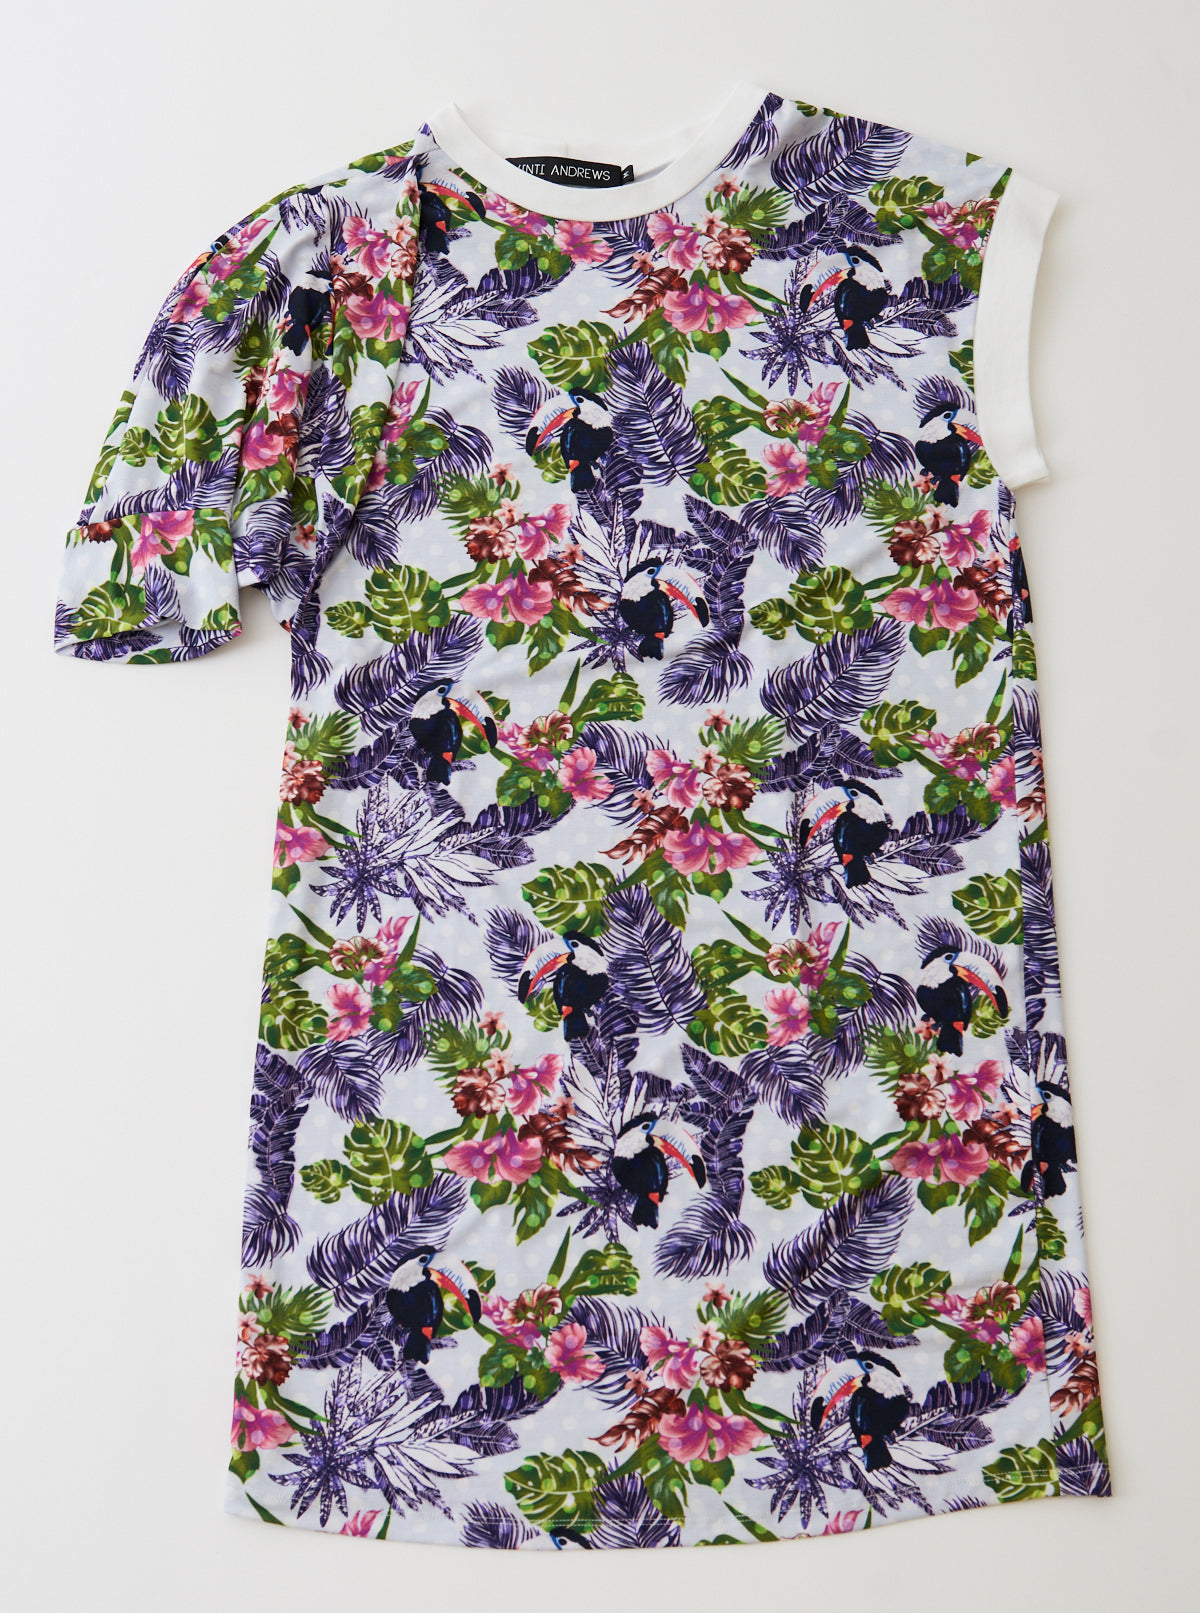 Vinti Andrews Asymmetric Floral Jersey Dress